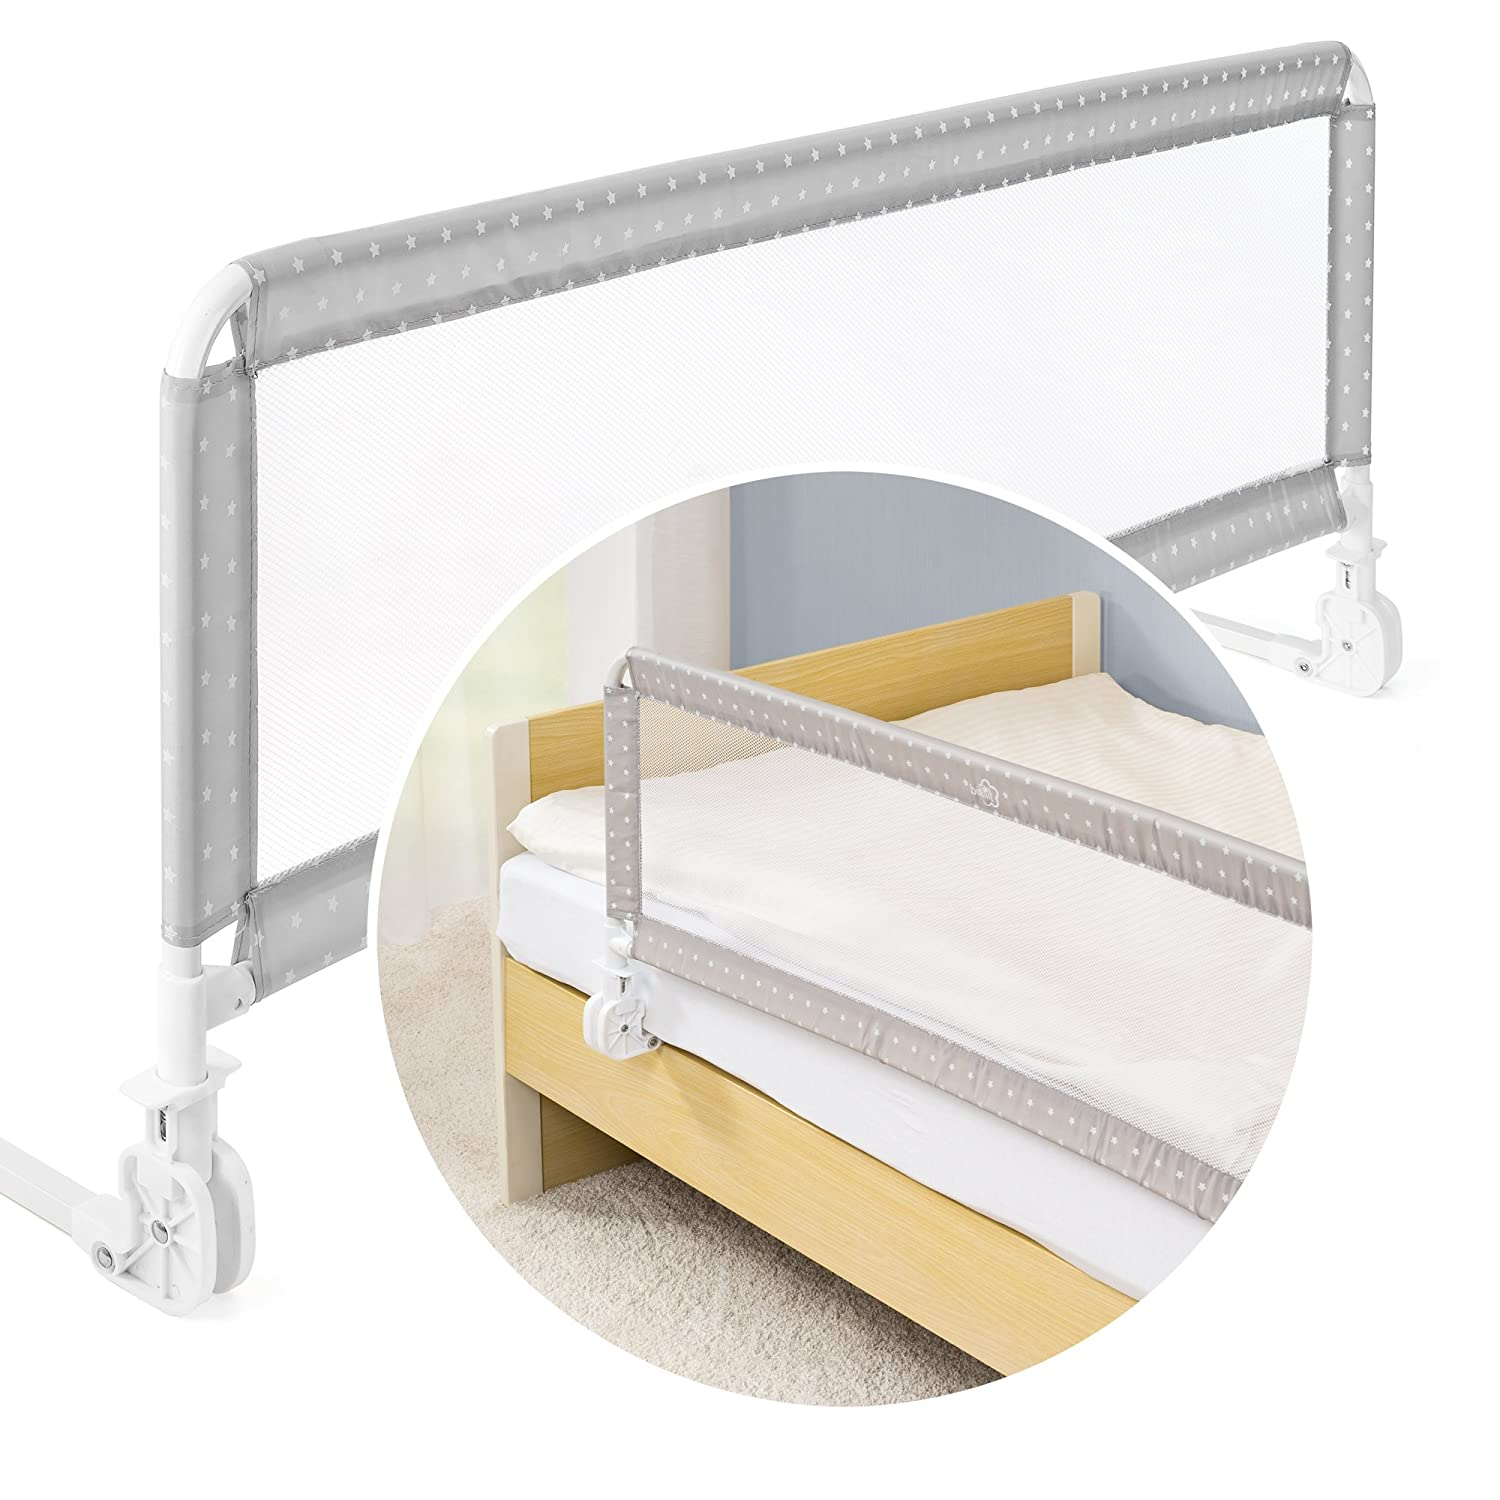 Fillikid XL Portable Bed Rail 135 x 50cm - Universal Folding Safety Bed Guard for Kids | Accommodates Box Spring Beds - Grey/White Stars